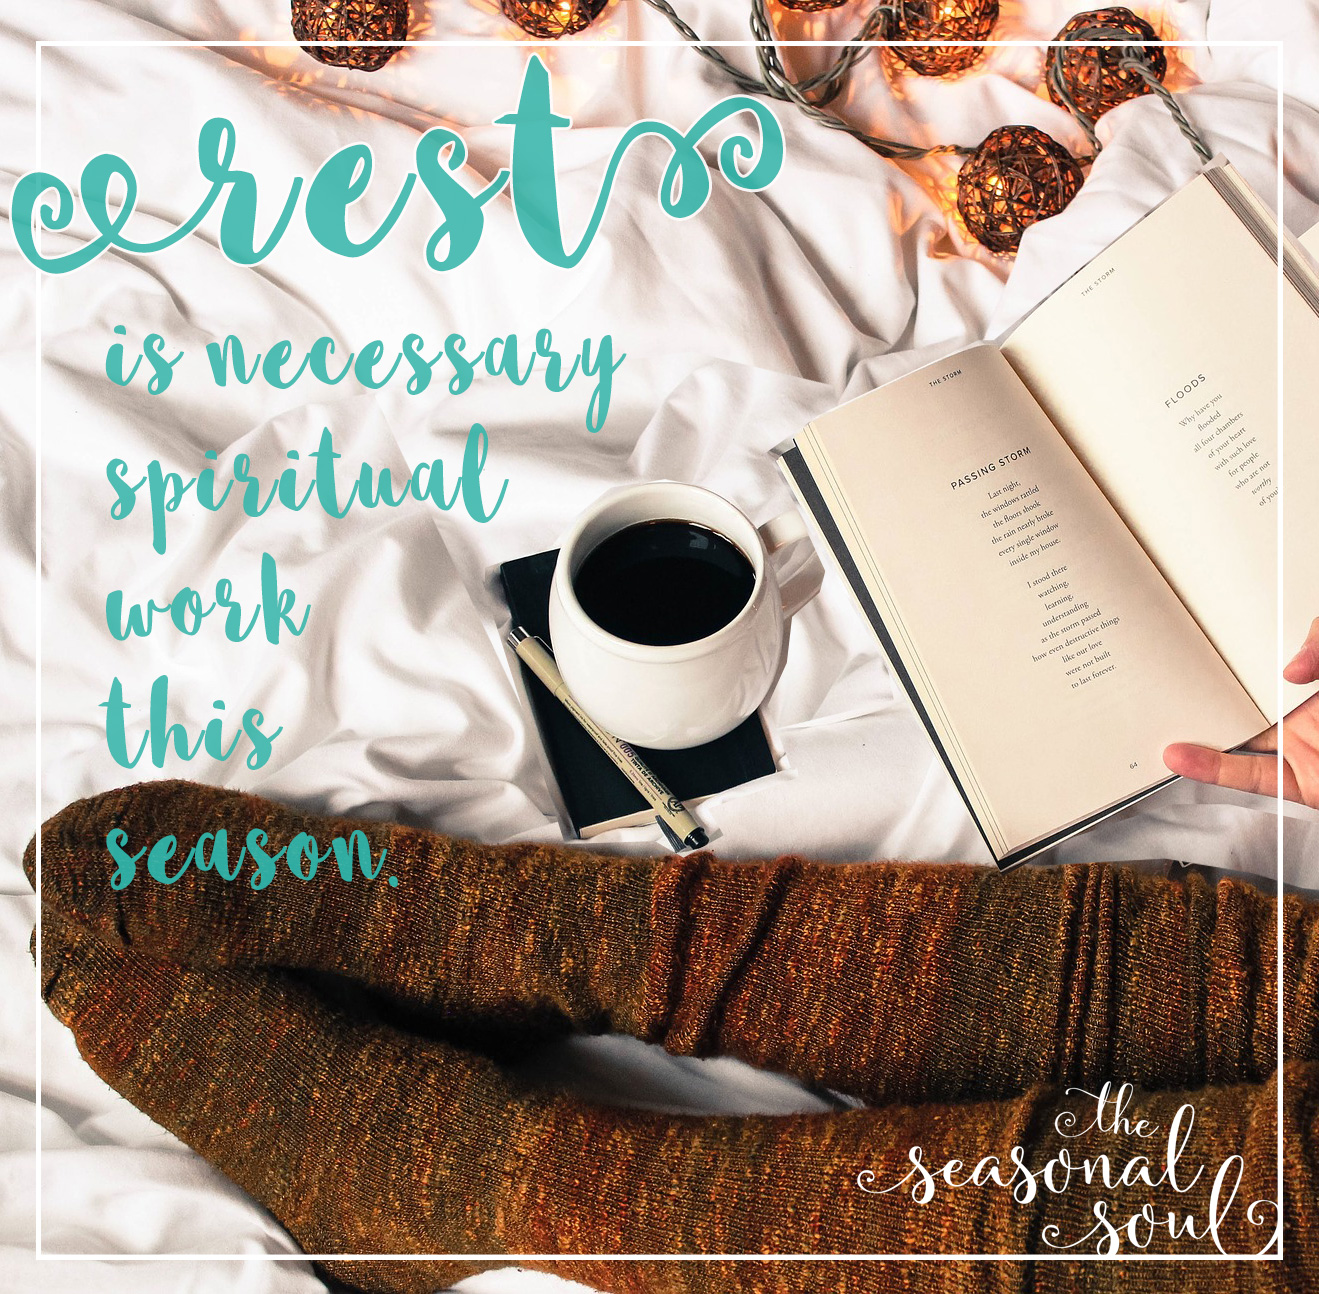 Rest is necessary spiritual work this season.